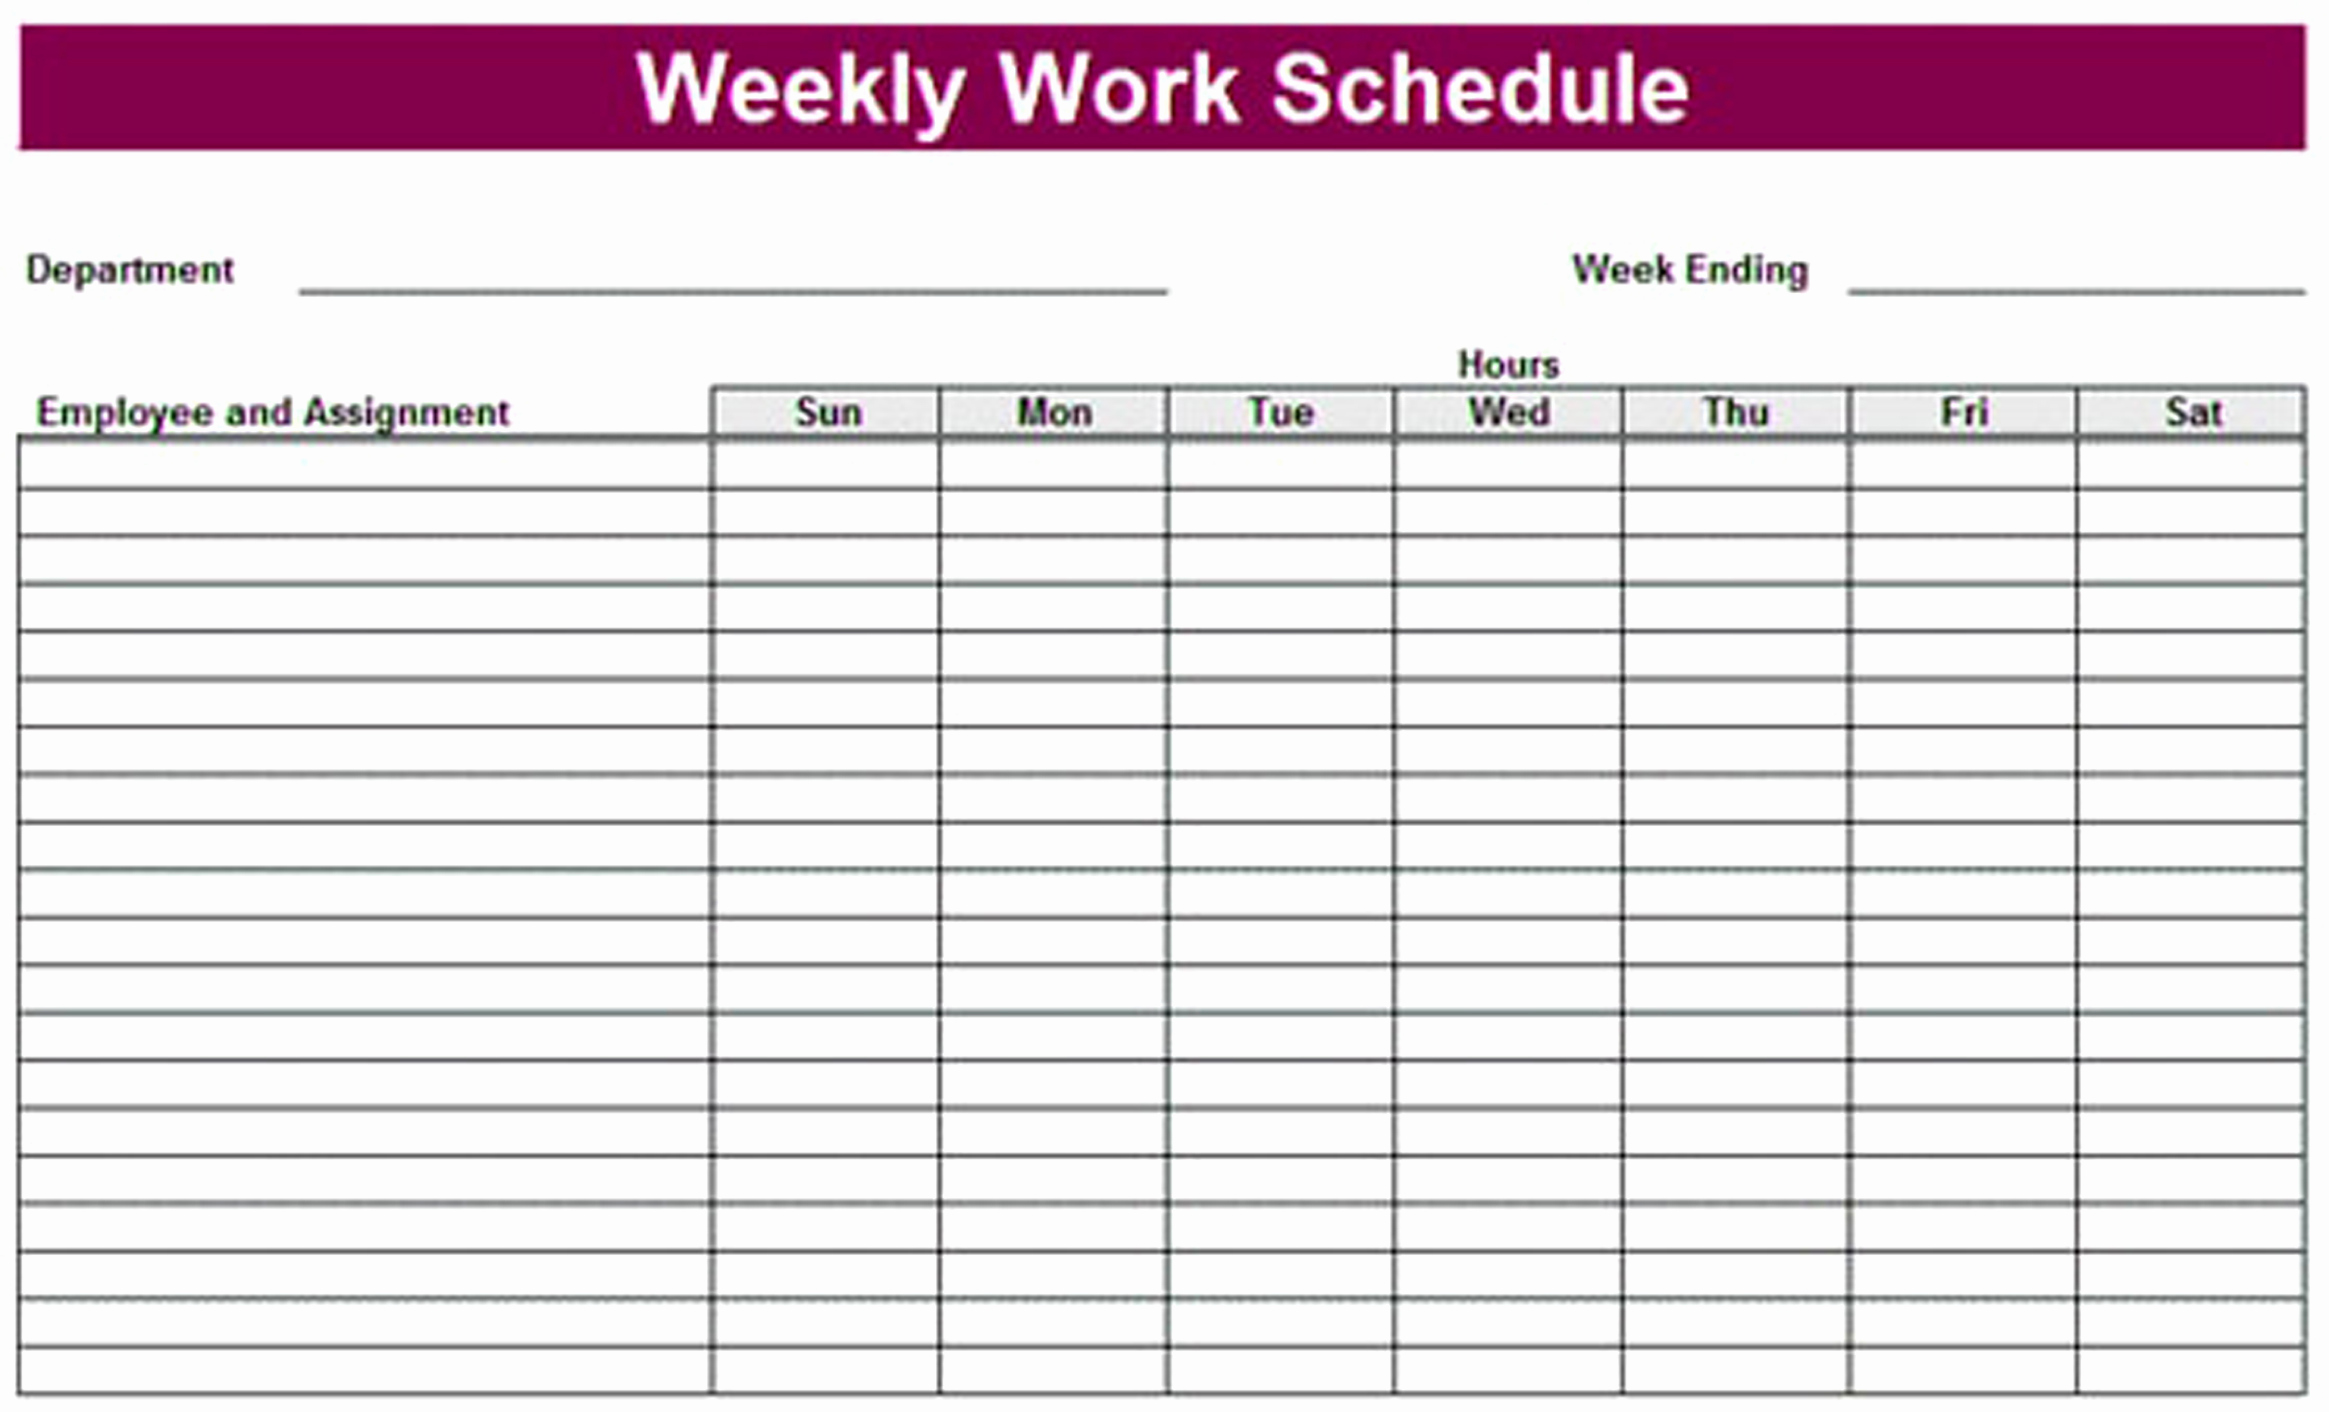 Weekly Schedule Template Printable Awesome Printable Weekly Schedule Template & Excel Planner